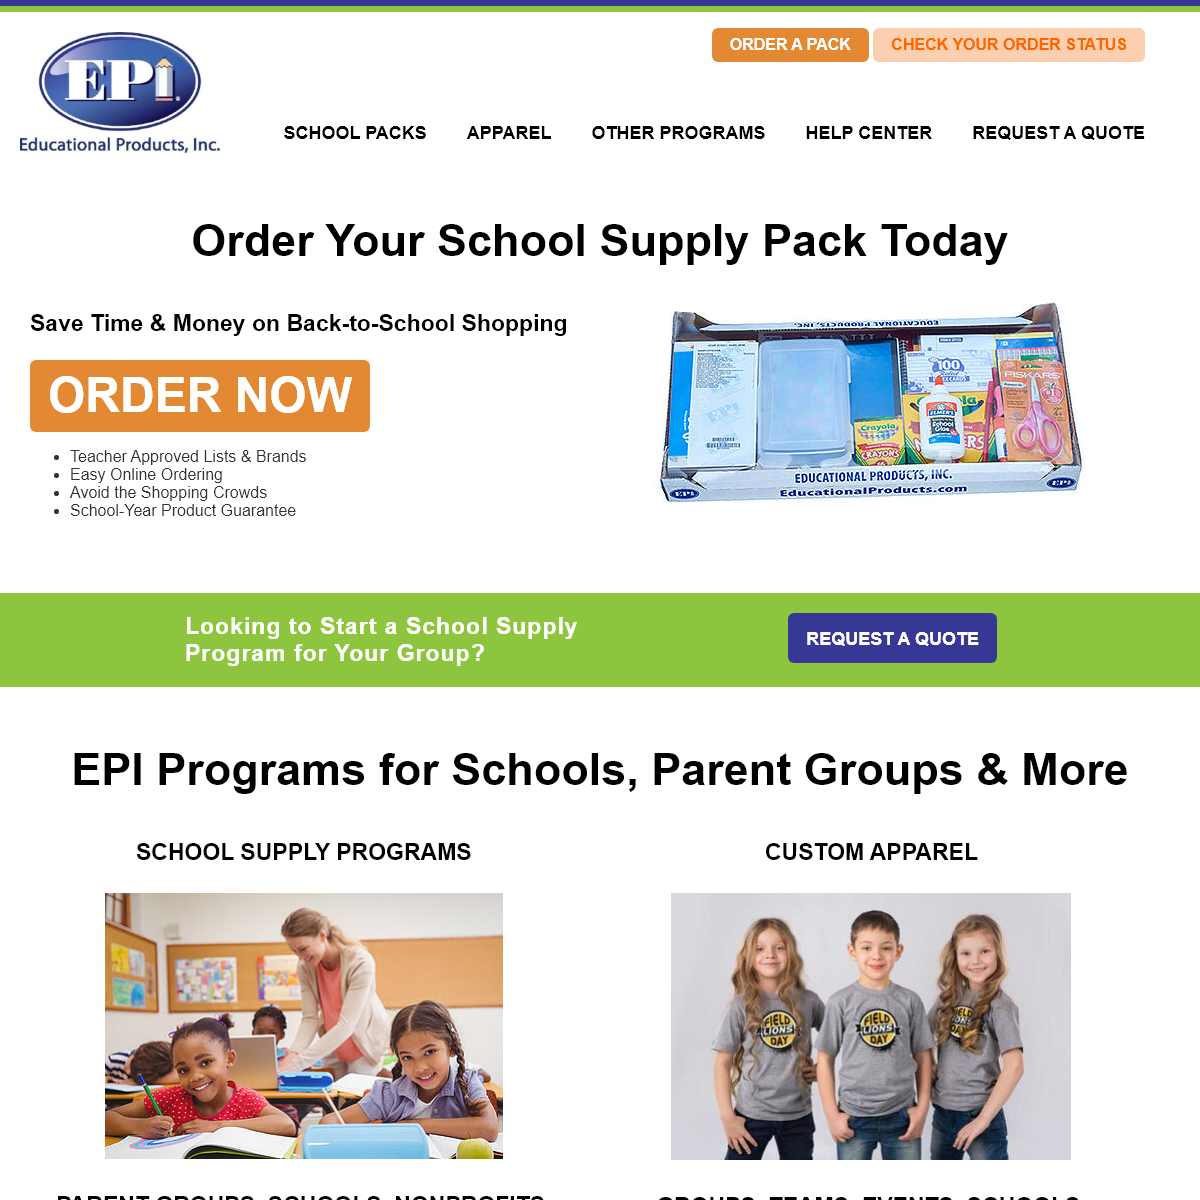 Educational Products, Inc. - #1 Prepackaged School Supply Company